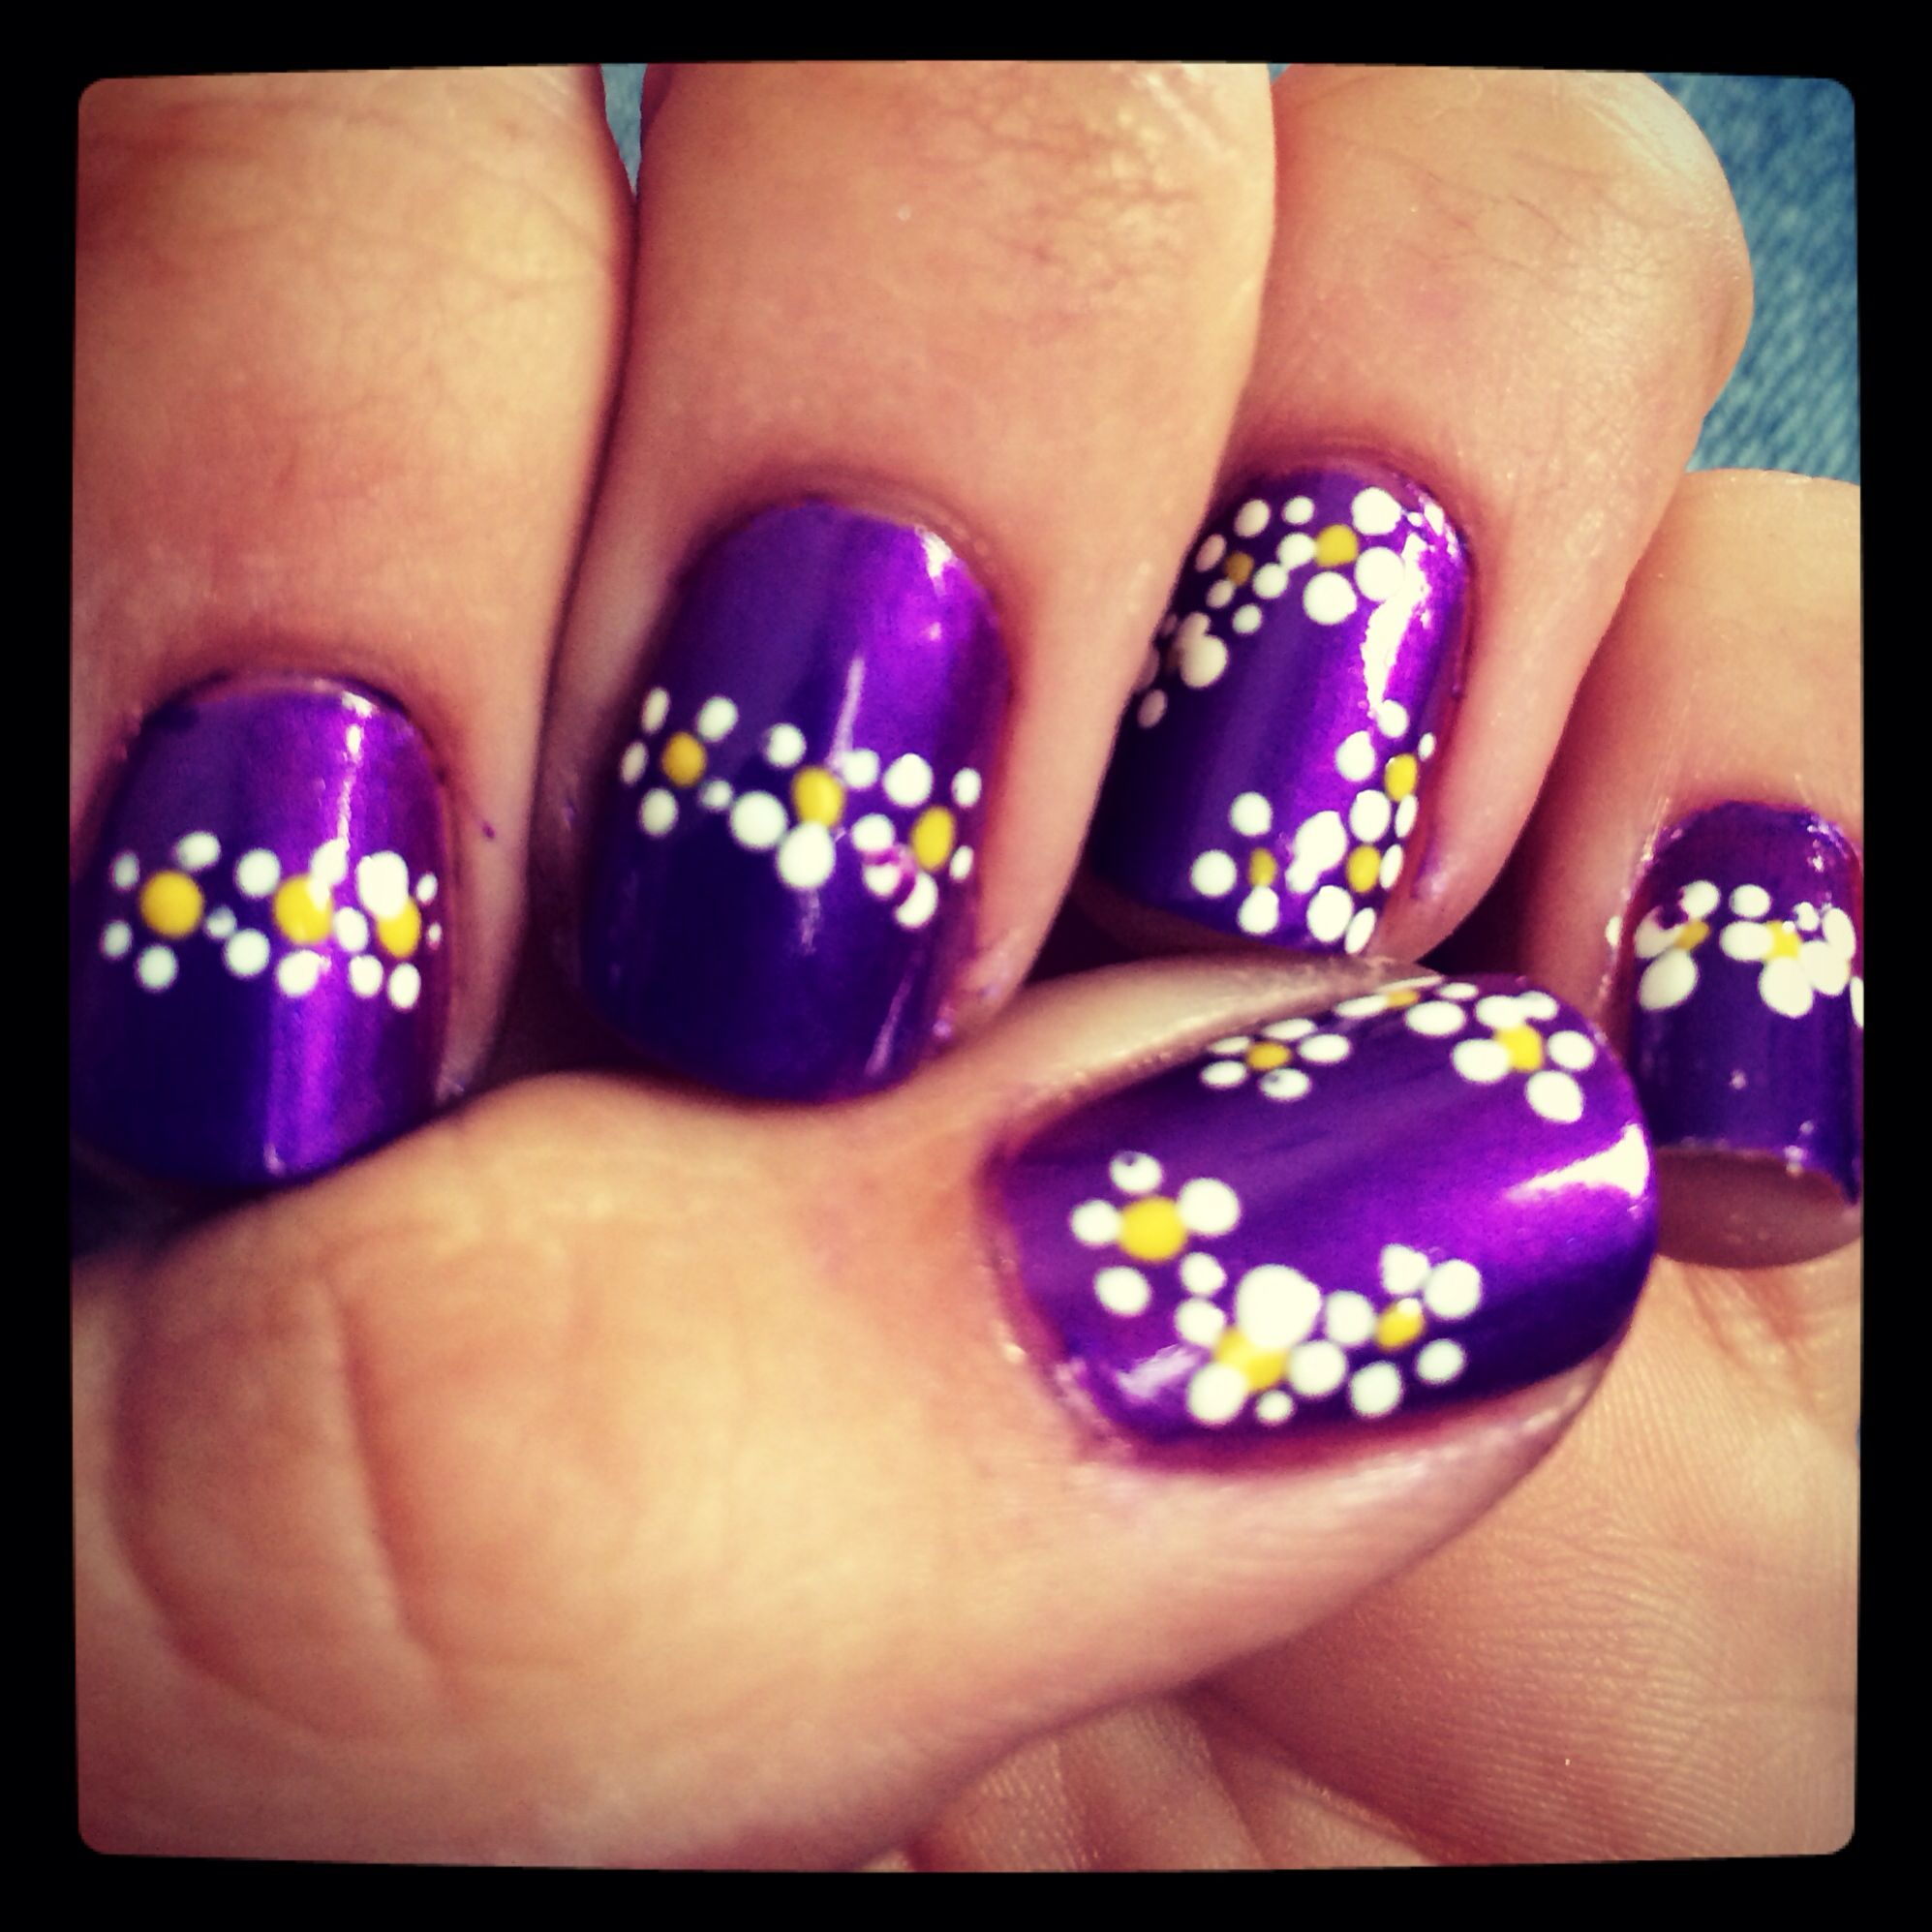 Diy purple with flower nail art manicure. Just painted my nails ...